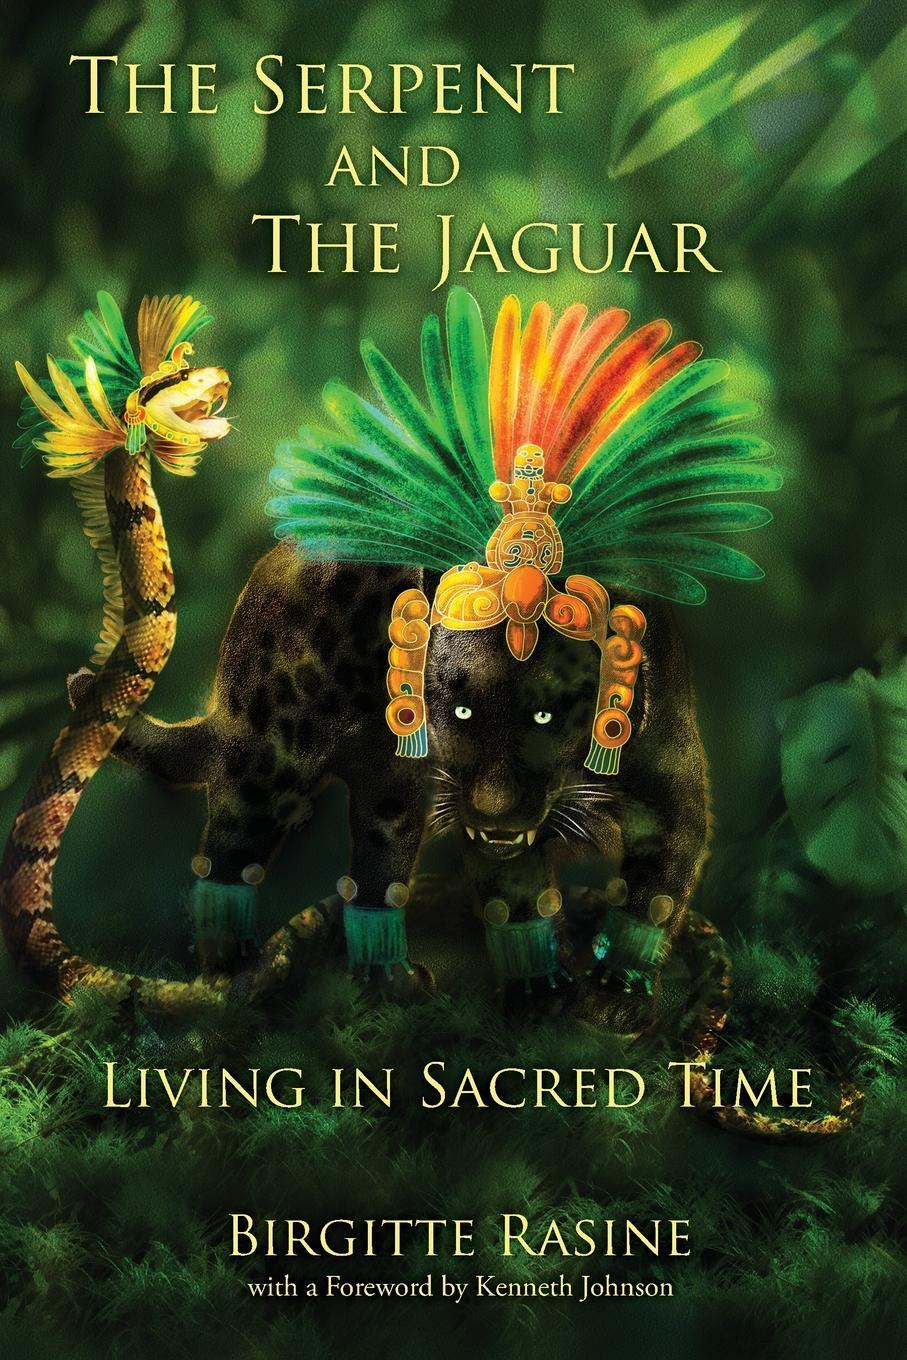 The Serpent and the Jaguar. Living in Sacred Time